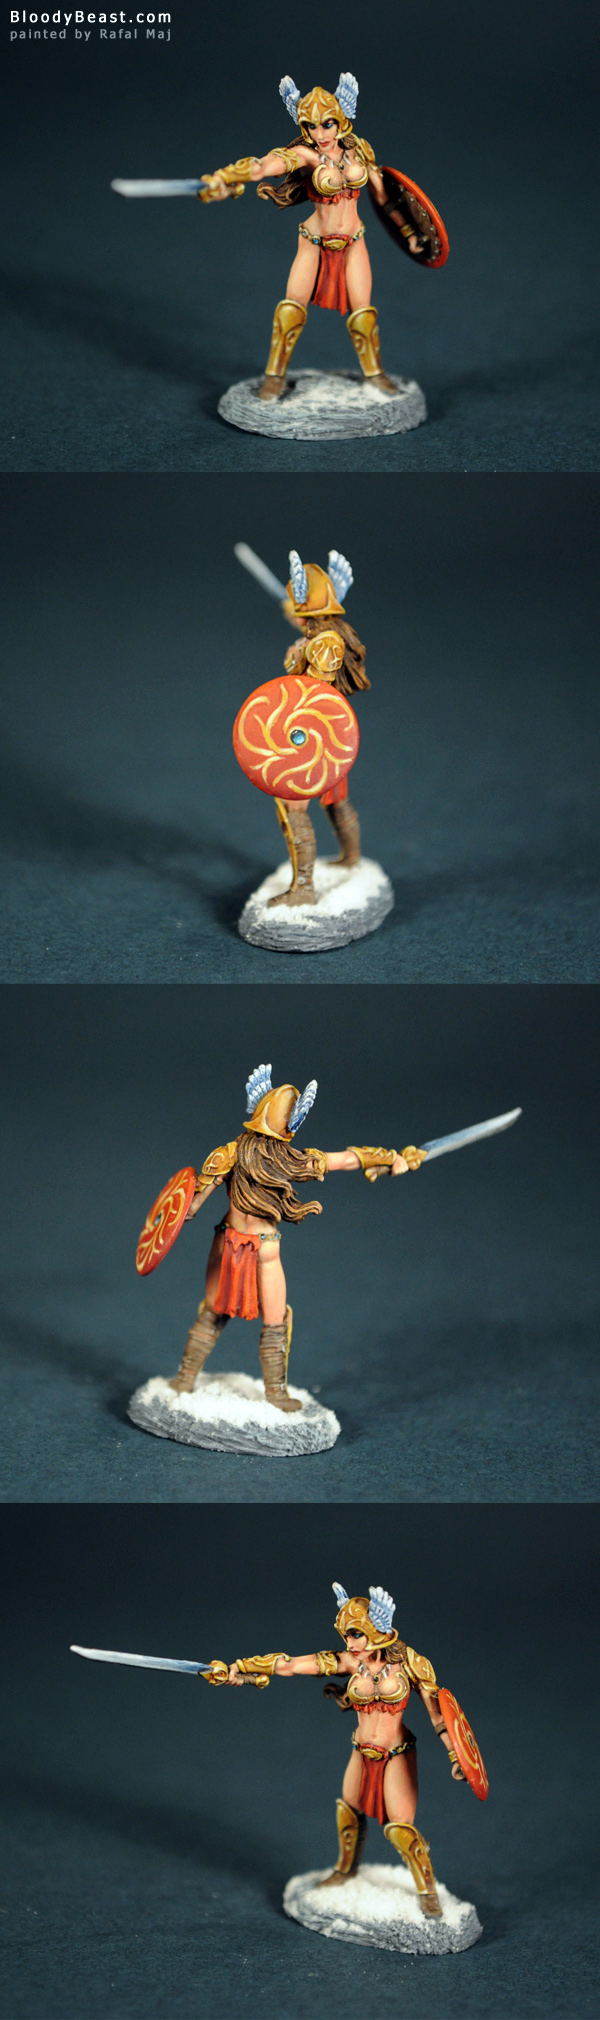 Female Barbarian painted by Rafal Maj (BloodyBeast.com)